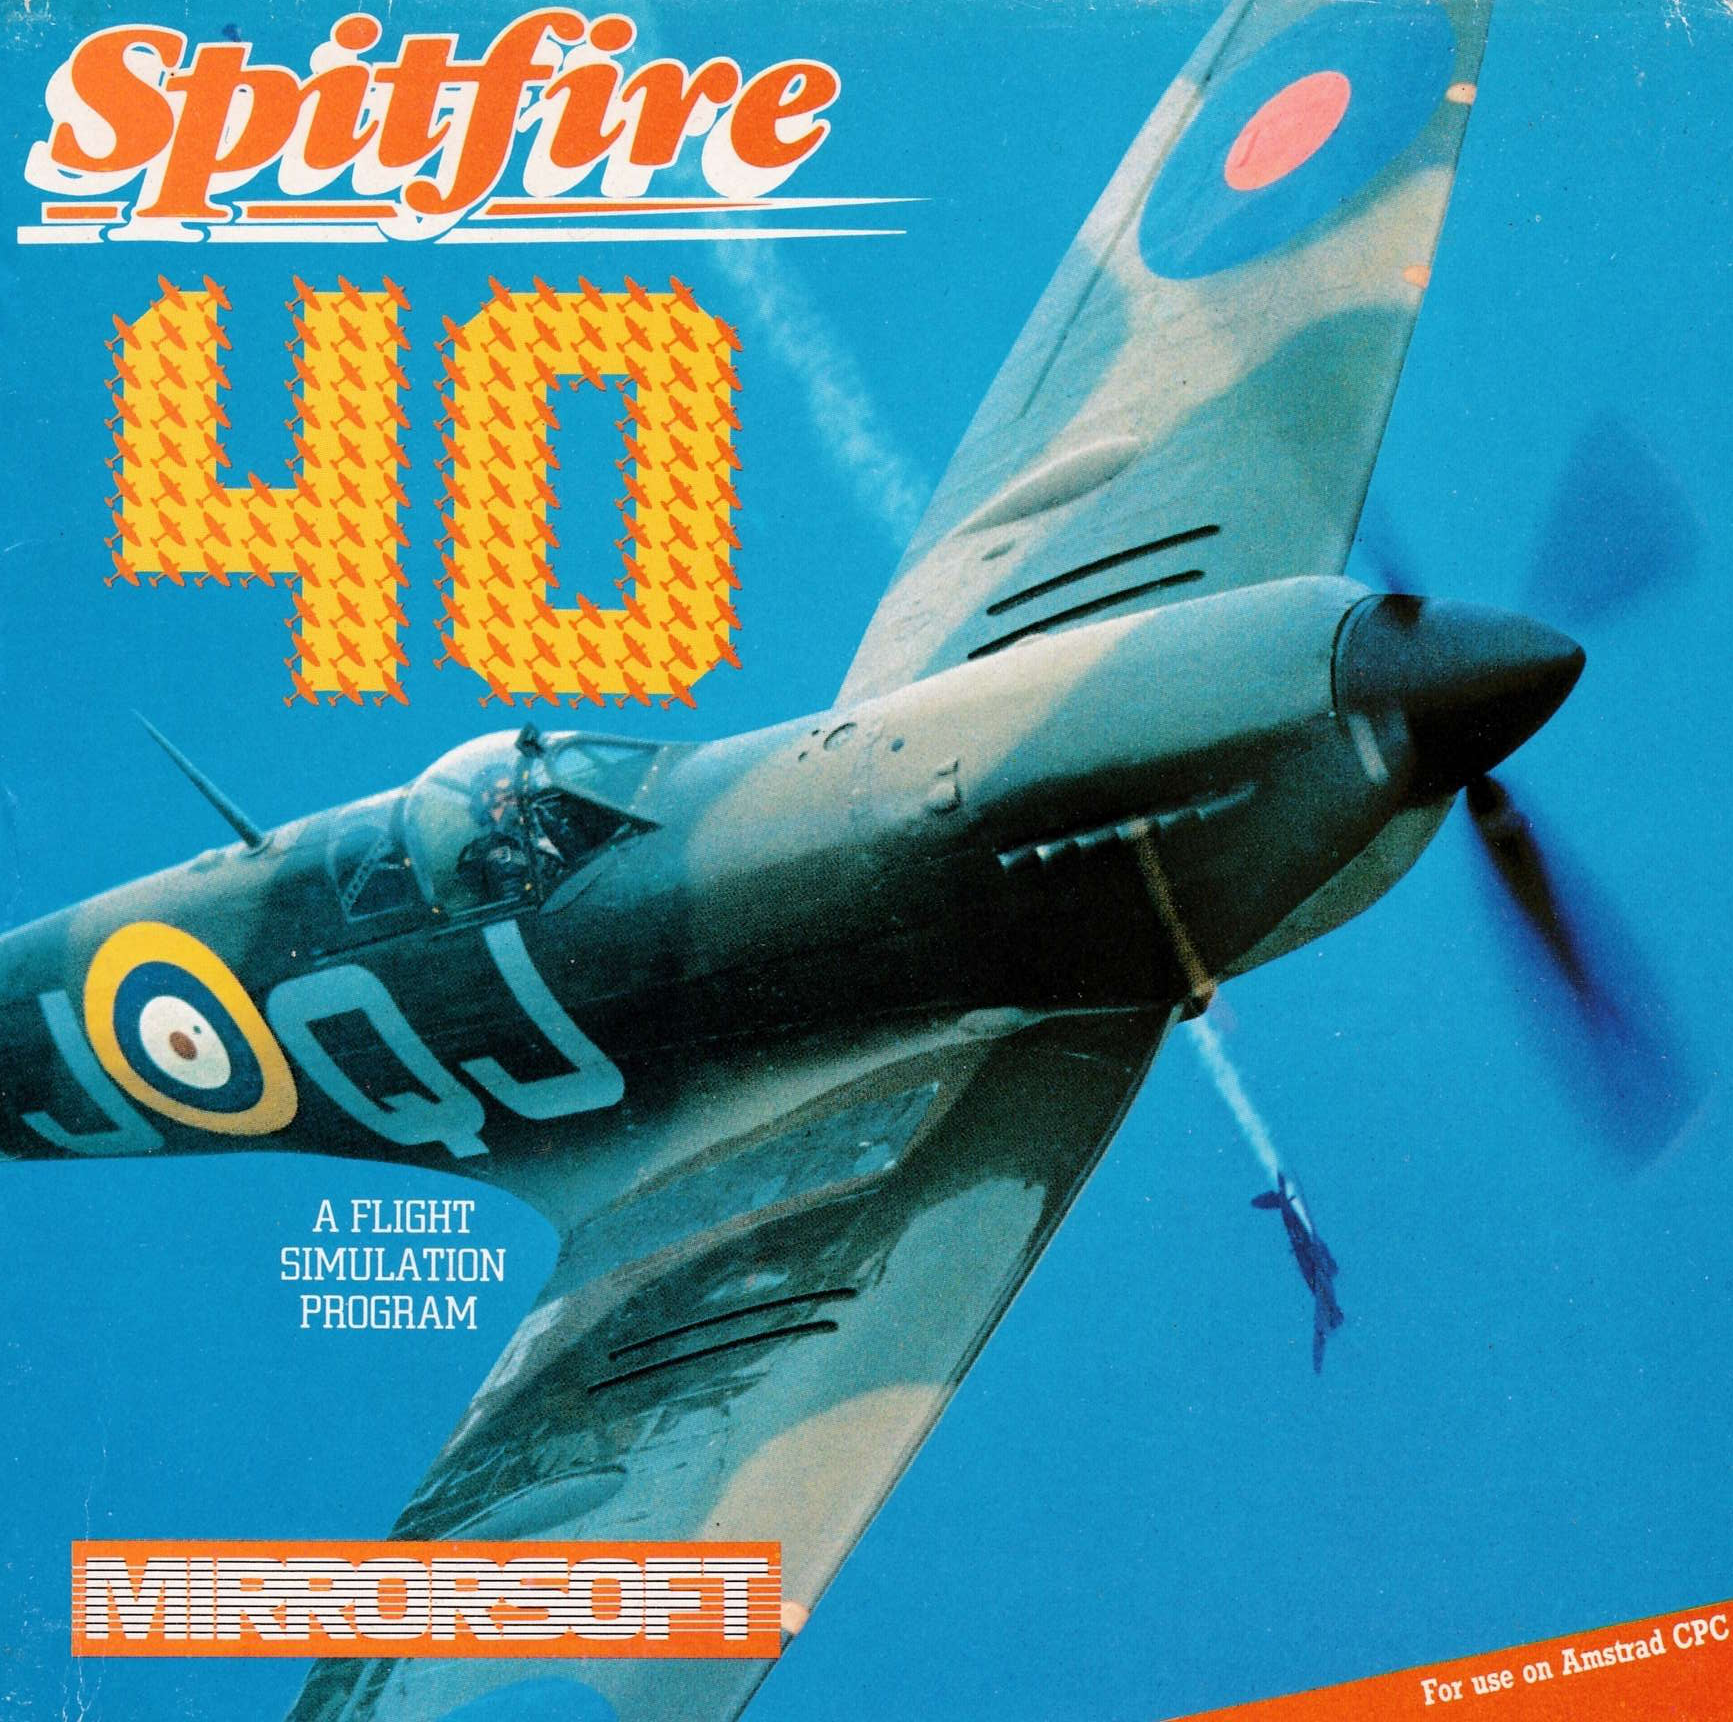 cover of the Amstrad CPC game Spitfire 40  by GameBase CPC